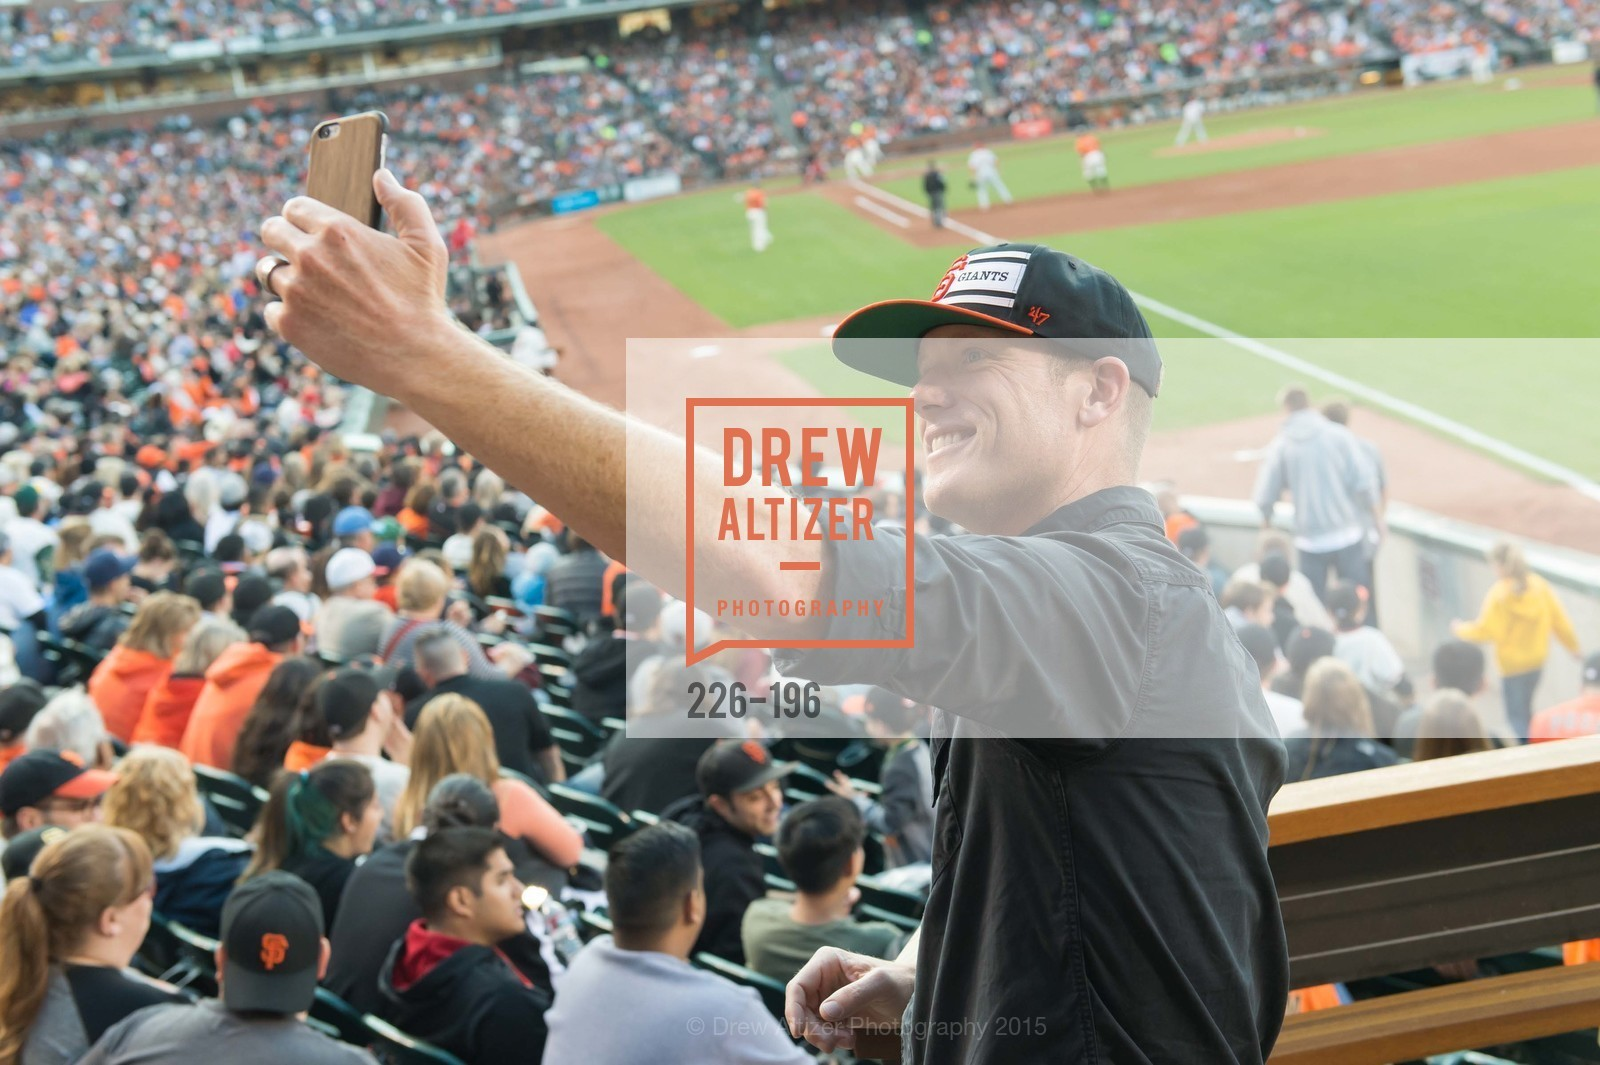 David Liniak, Francis Ford Coppola Winery Presents Diamond on the Diamond, San Francisco Giants AT&T Park, Virgin America Loft. 24 Willie Mays Plaza, July 10th, 2015,Drew Altizer, Drew Altizer Photography, full-service agency, private events, San Francisco photographer, photographer california